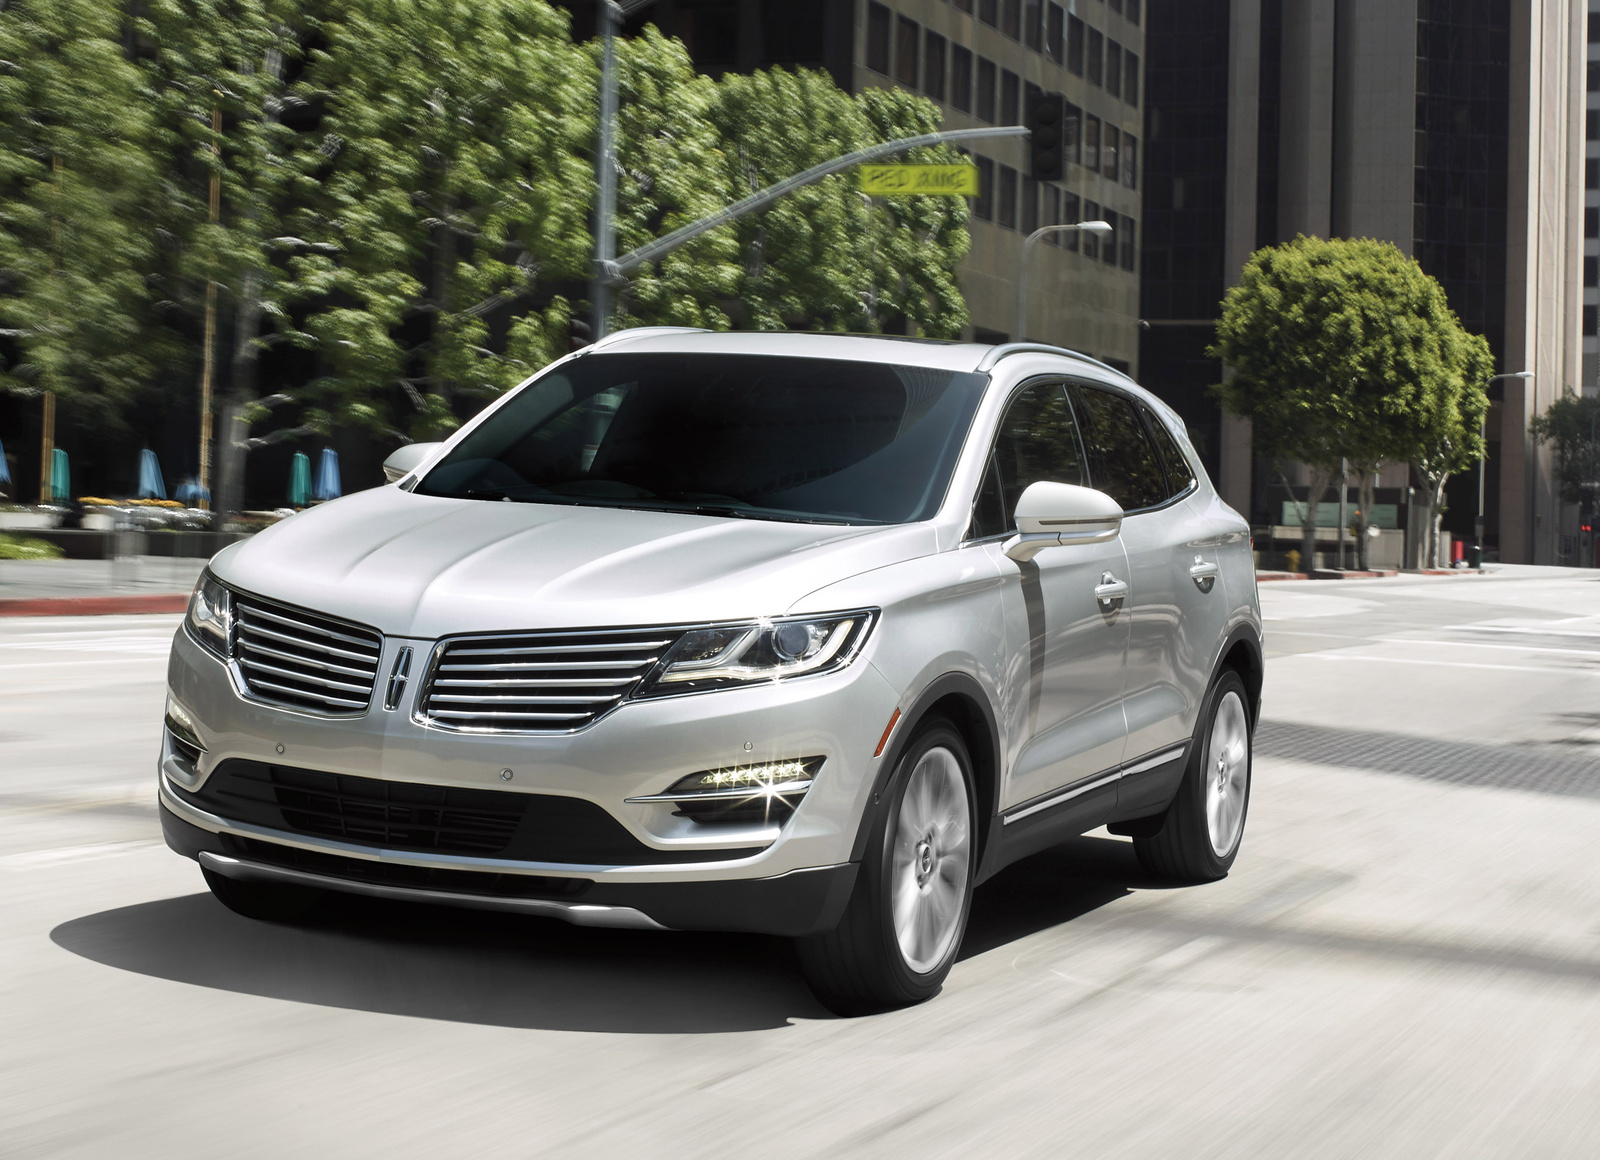 Lincoln Mkc For Sale >> 2016 Lincoln Mkc Overview Cargurus